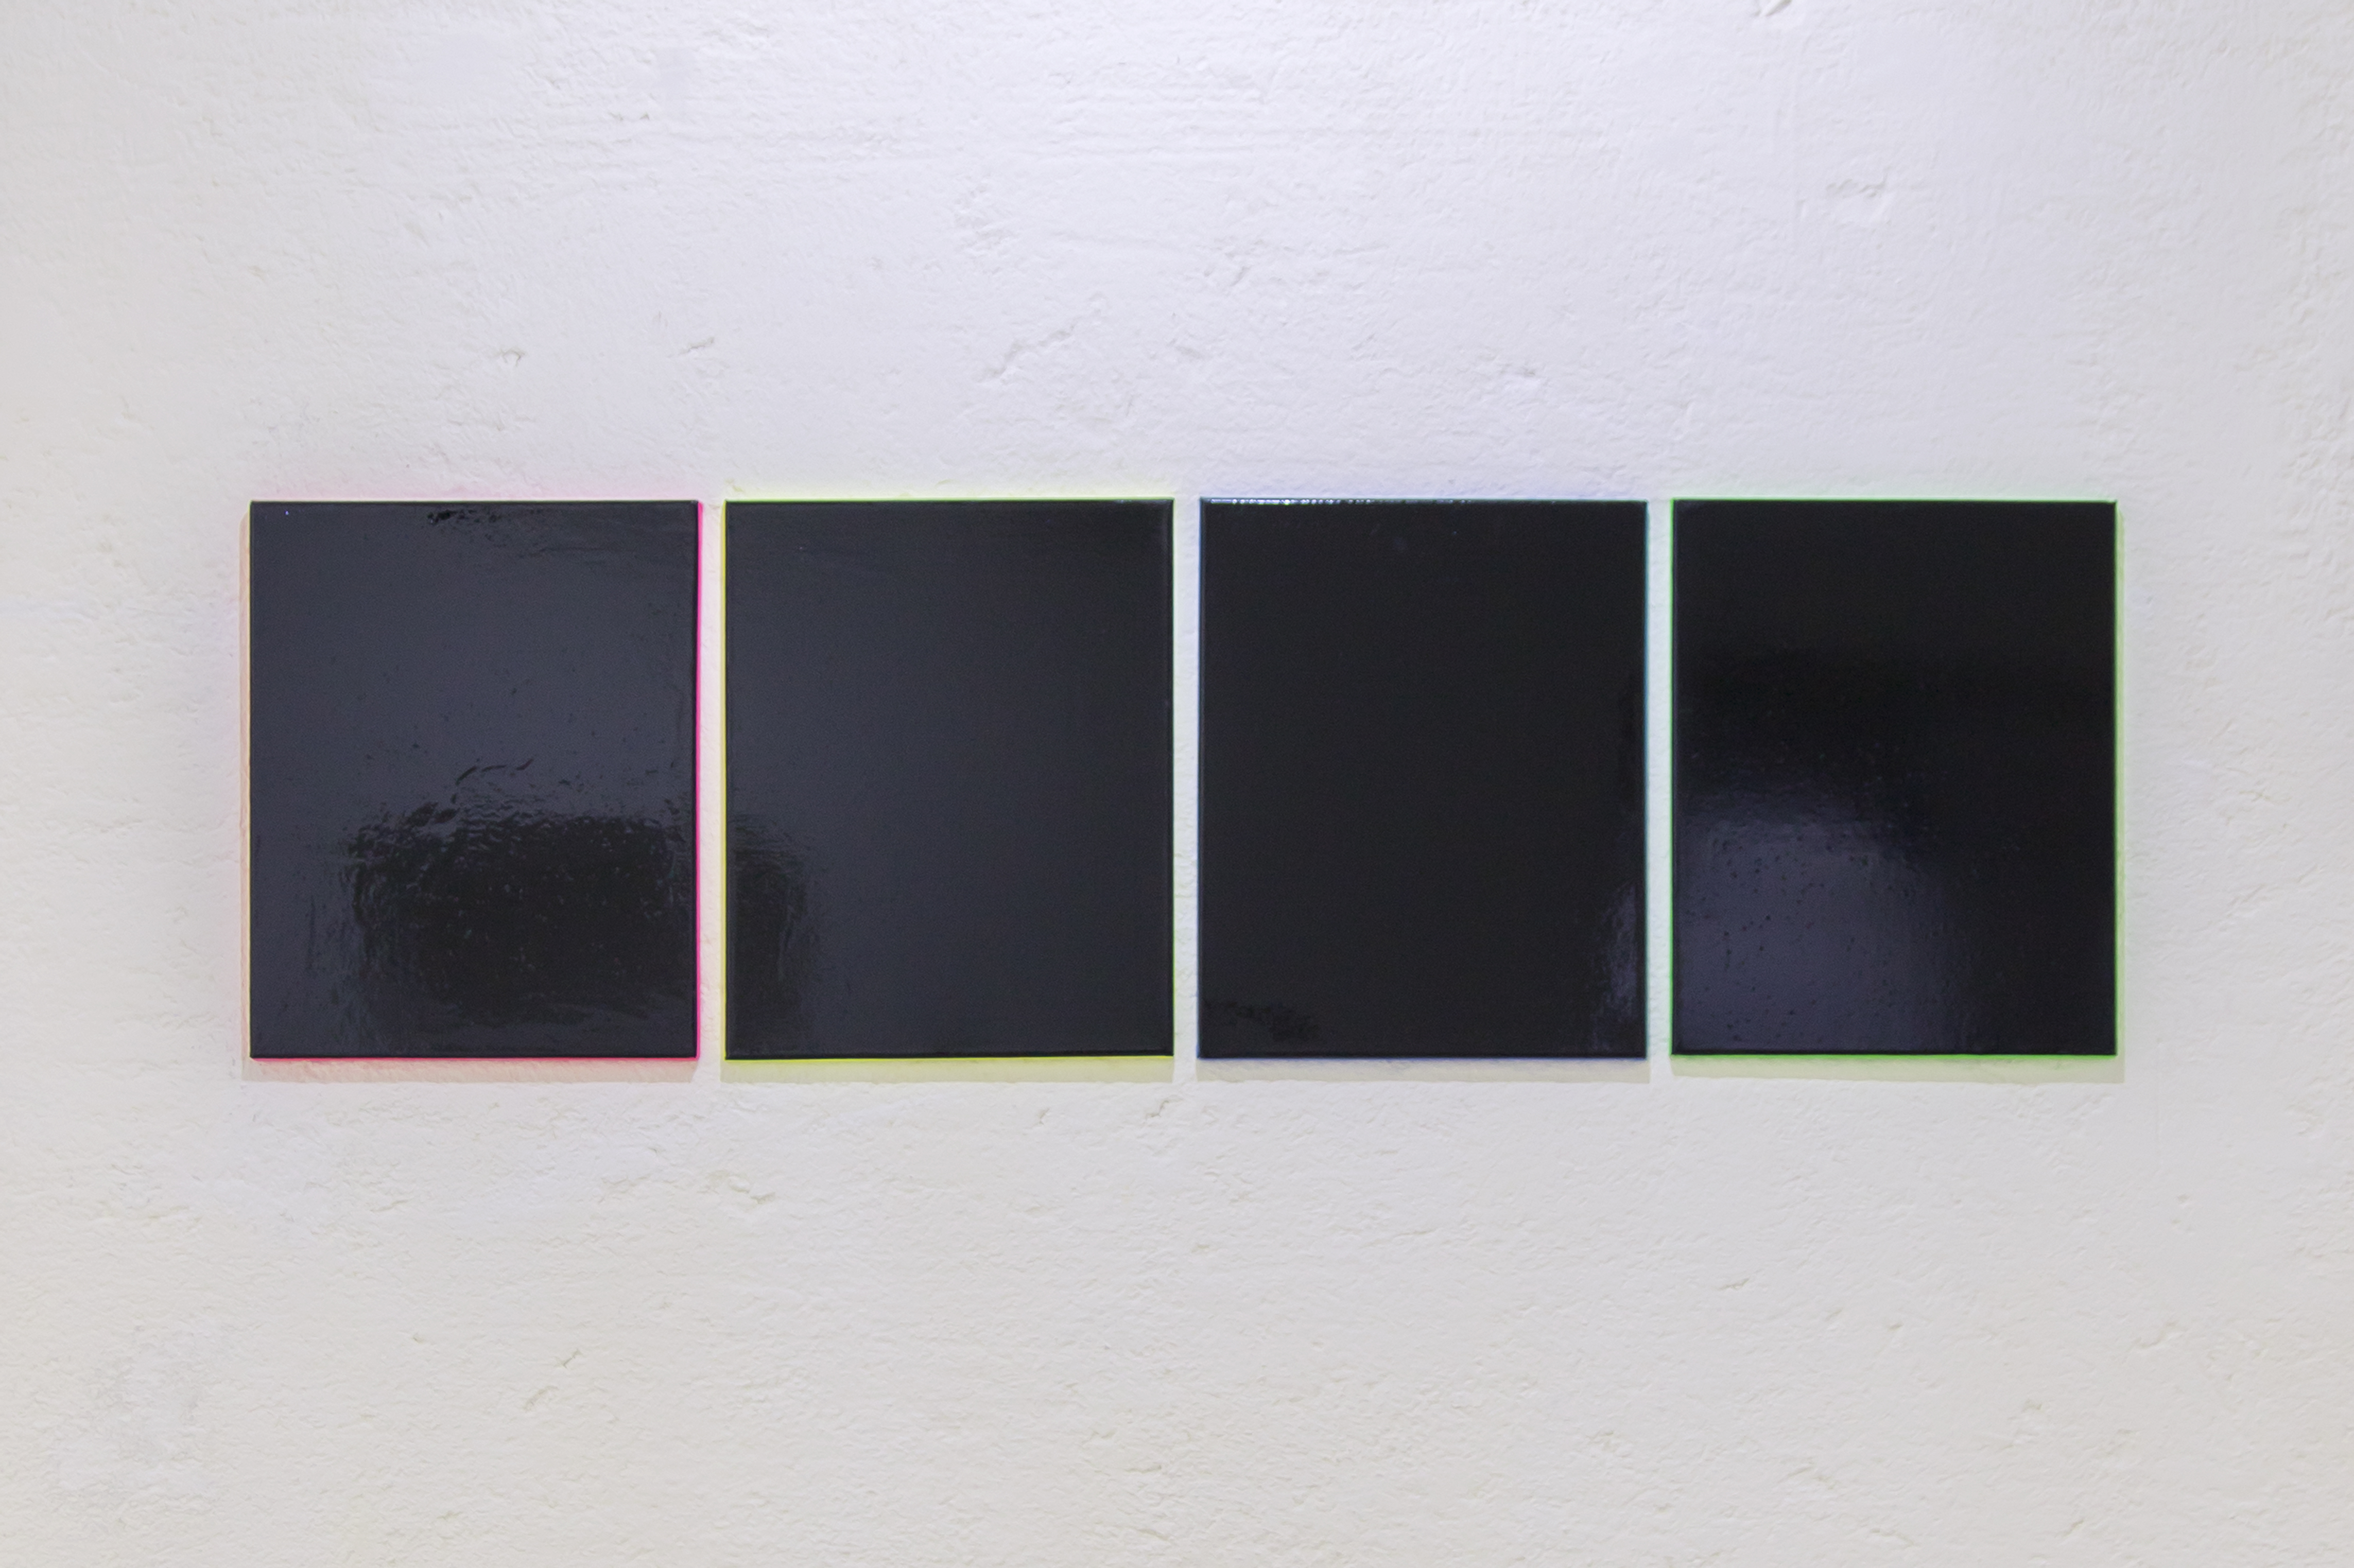 Untitled (to R.R.), Synthetic enamel paint and alkyd enamel on canvas, 50 cm x 40 cm each, 2014 - 2016